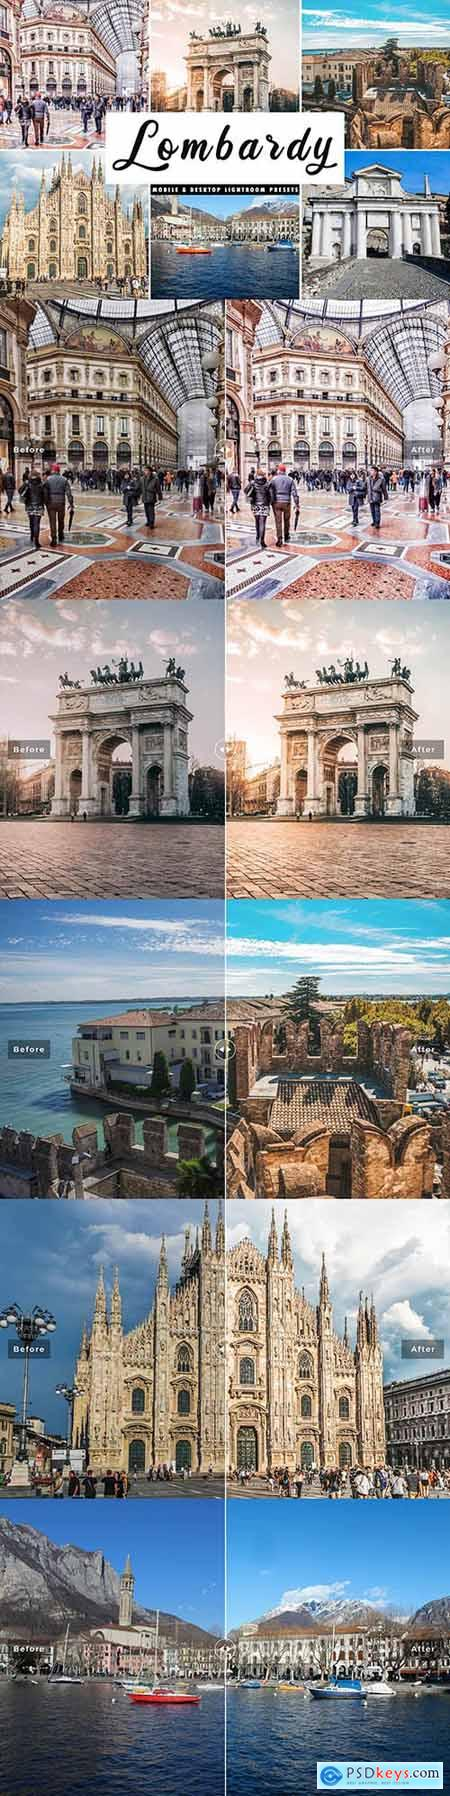 Lombardy Lightroom Presets Pack 4508559